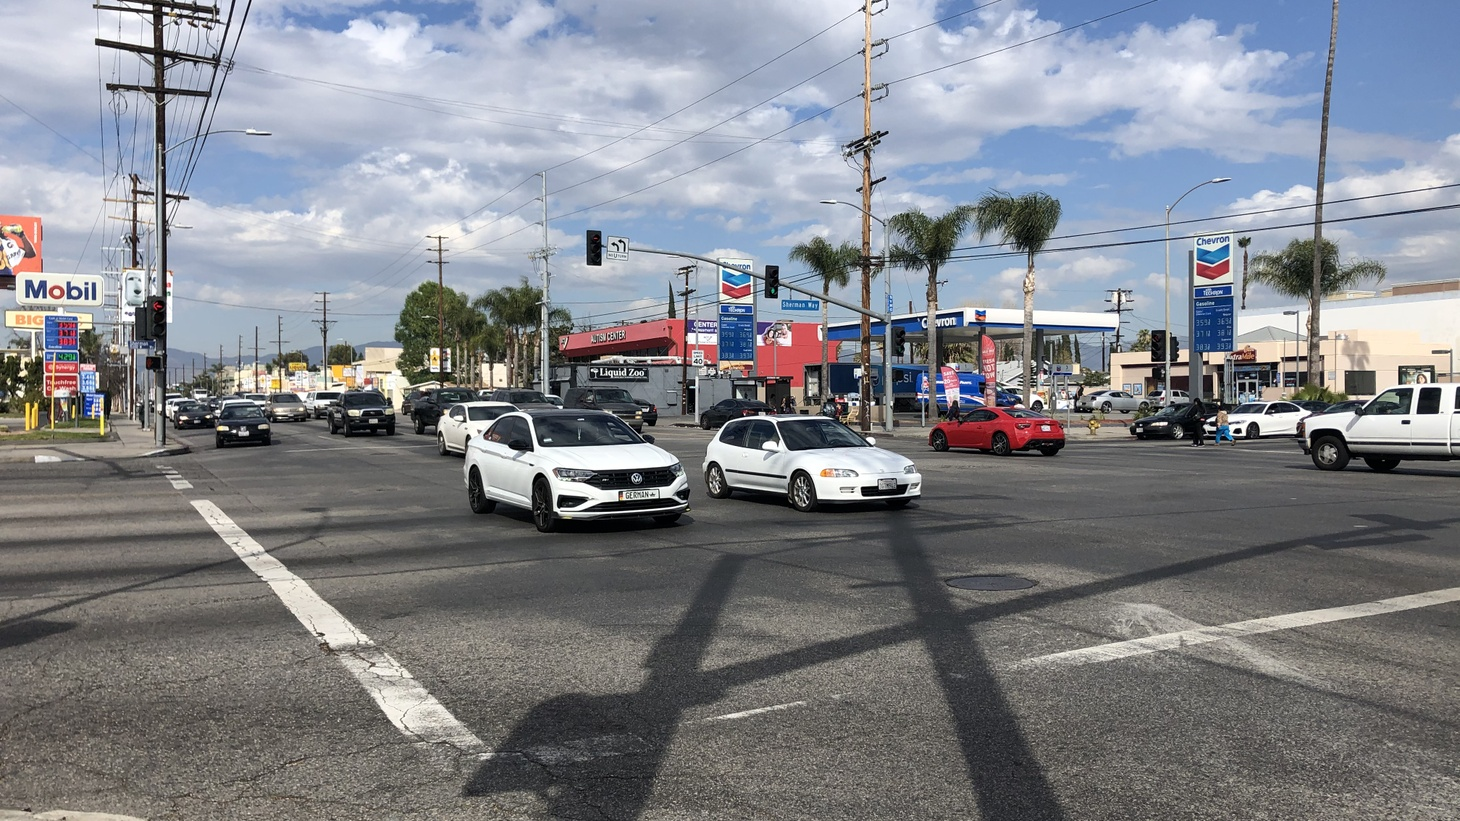 The most dangerous intersection is located at Sepulveda Blvd. and Sherman Way in Van Nuys.